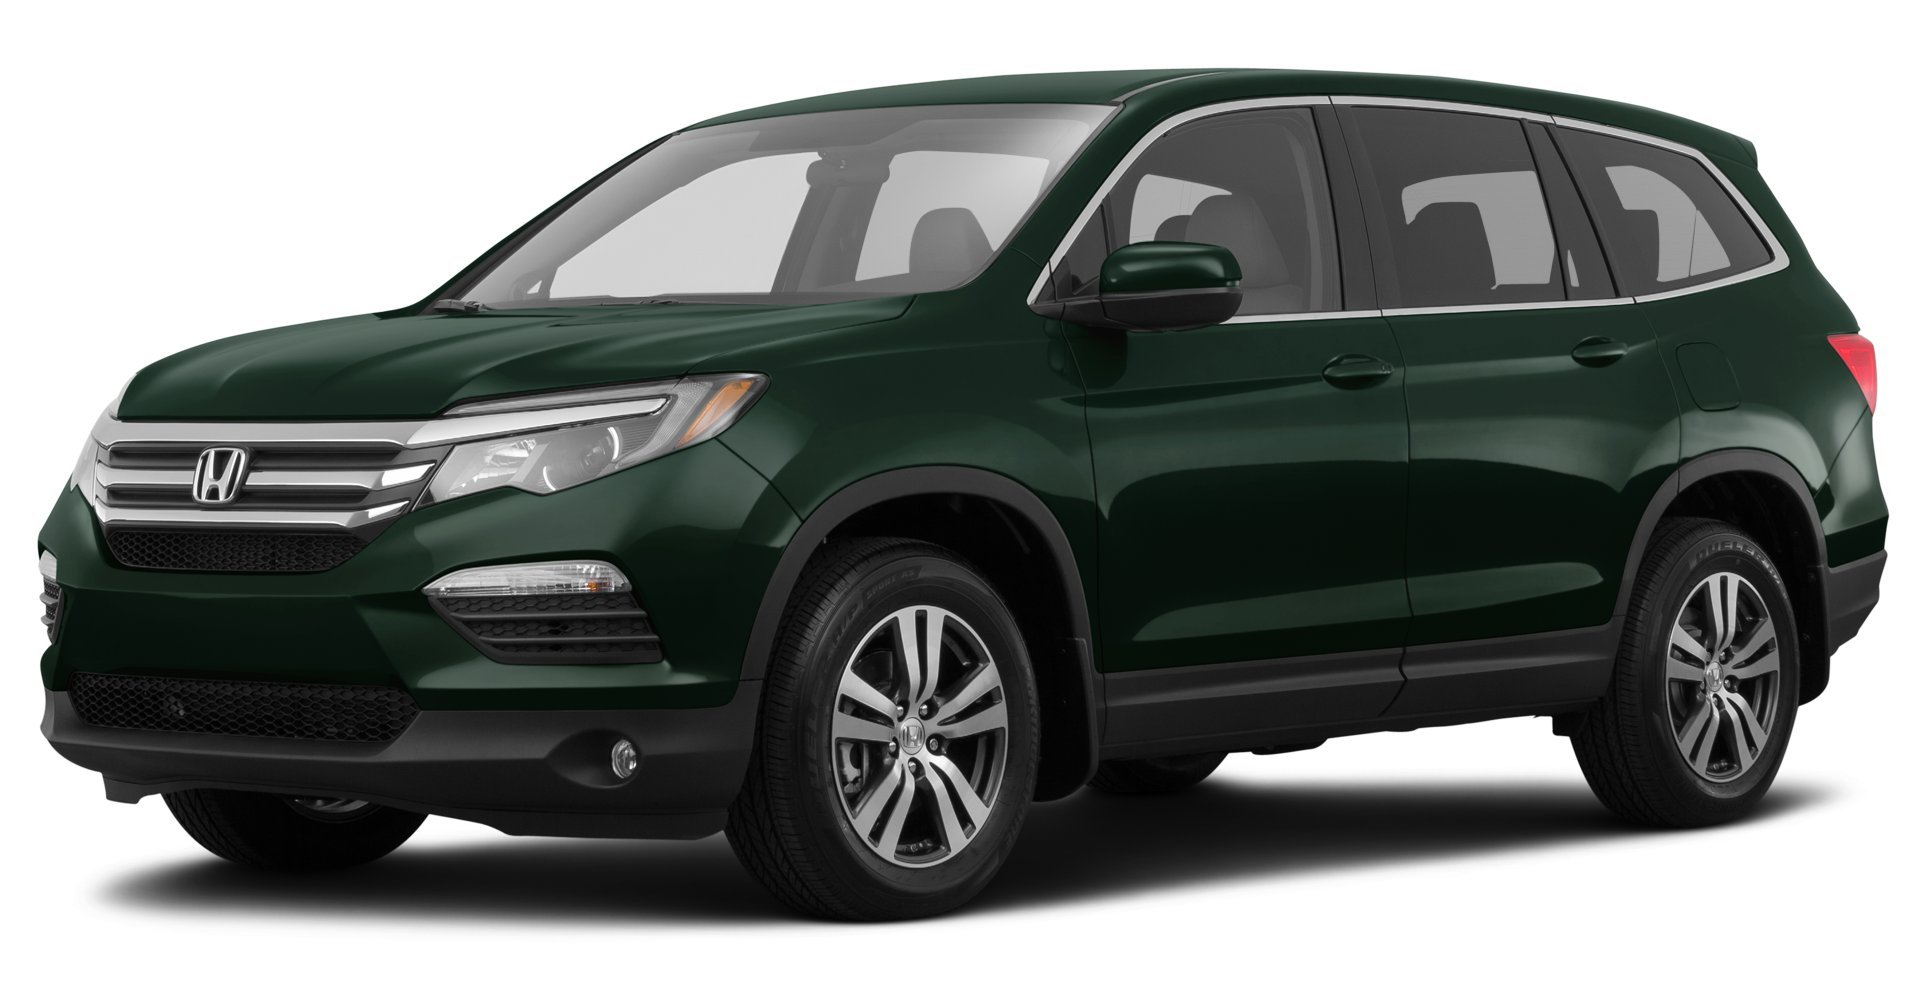 2016 honda pilot reviews images and specs vehicles. Black Bedroom Furniture Sets. Home Design Ideas